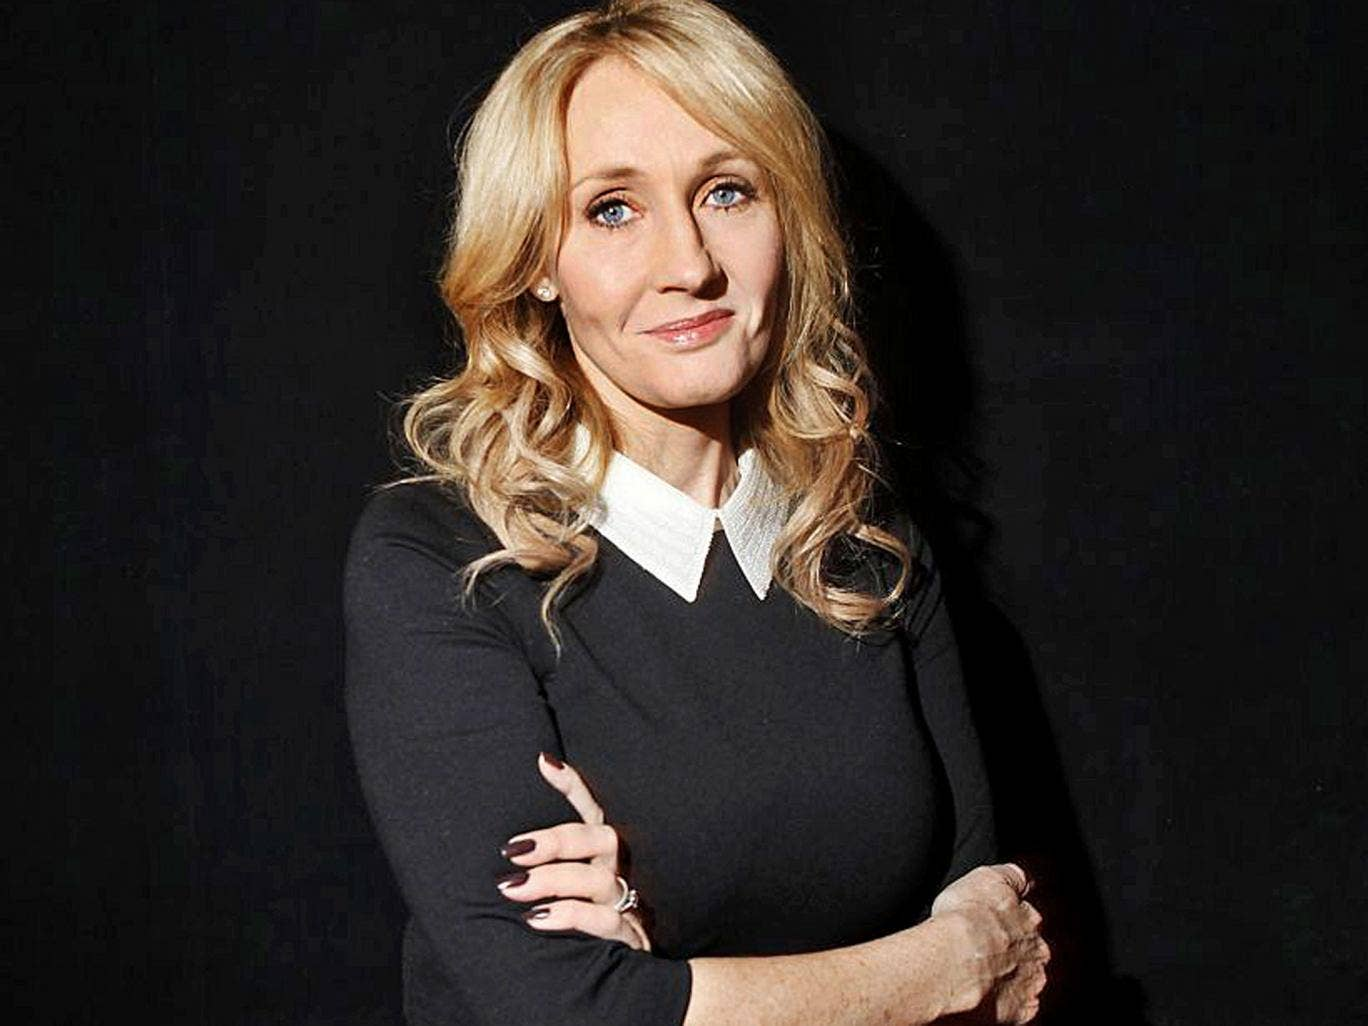 JK Rowling has attacked phone-hacking in her new novel after suffering press intrusion herself